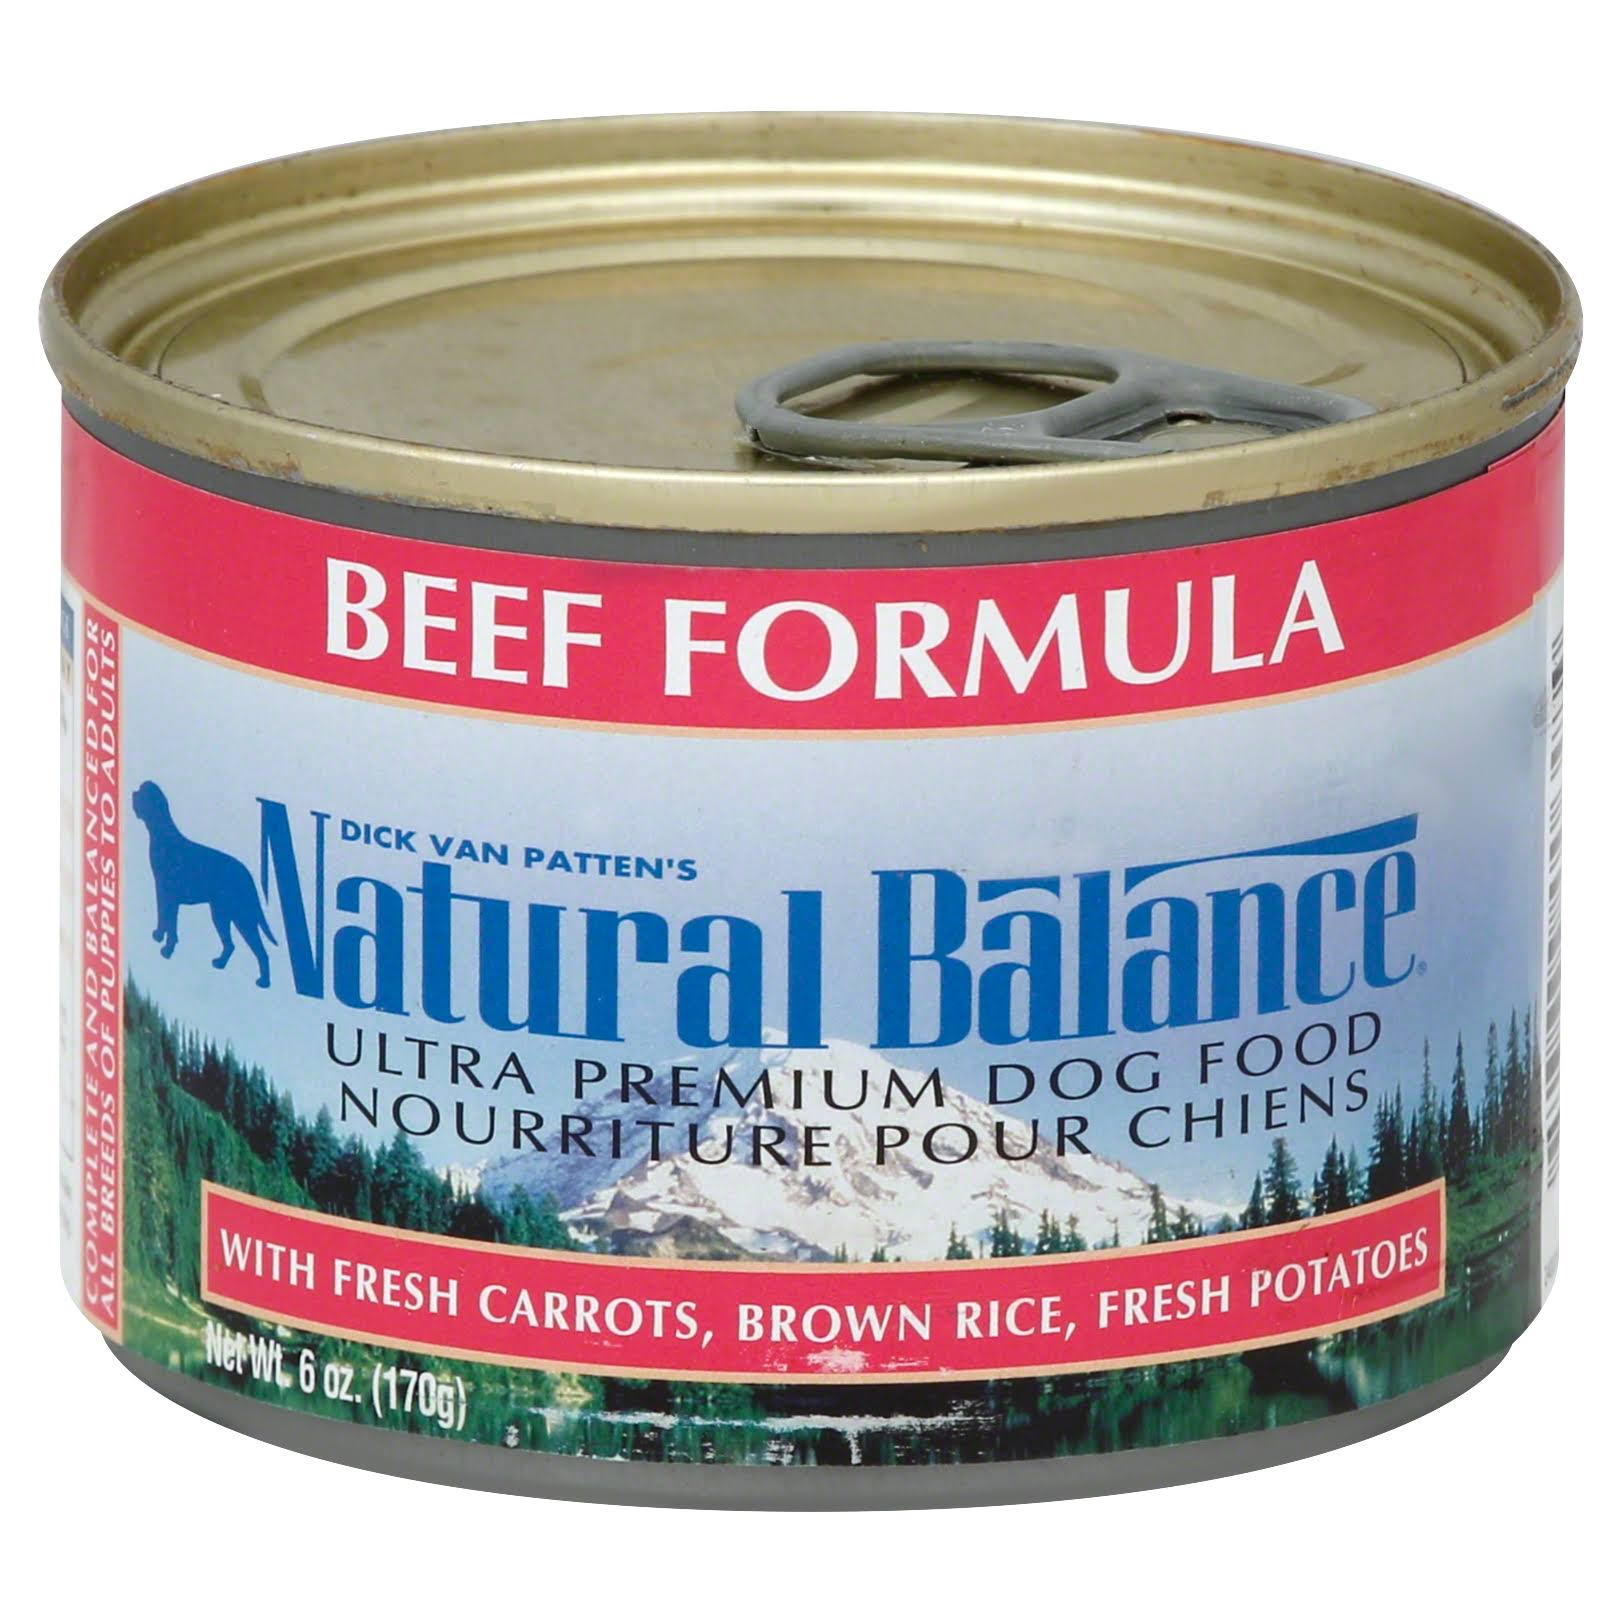 Natural Balance Ultra Premium Beef Formula Canned Dog Food - 6oz, Case of 12